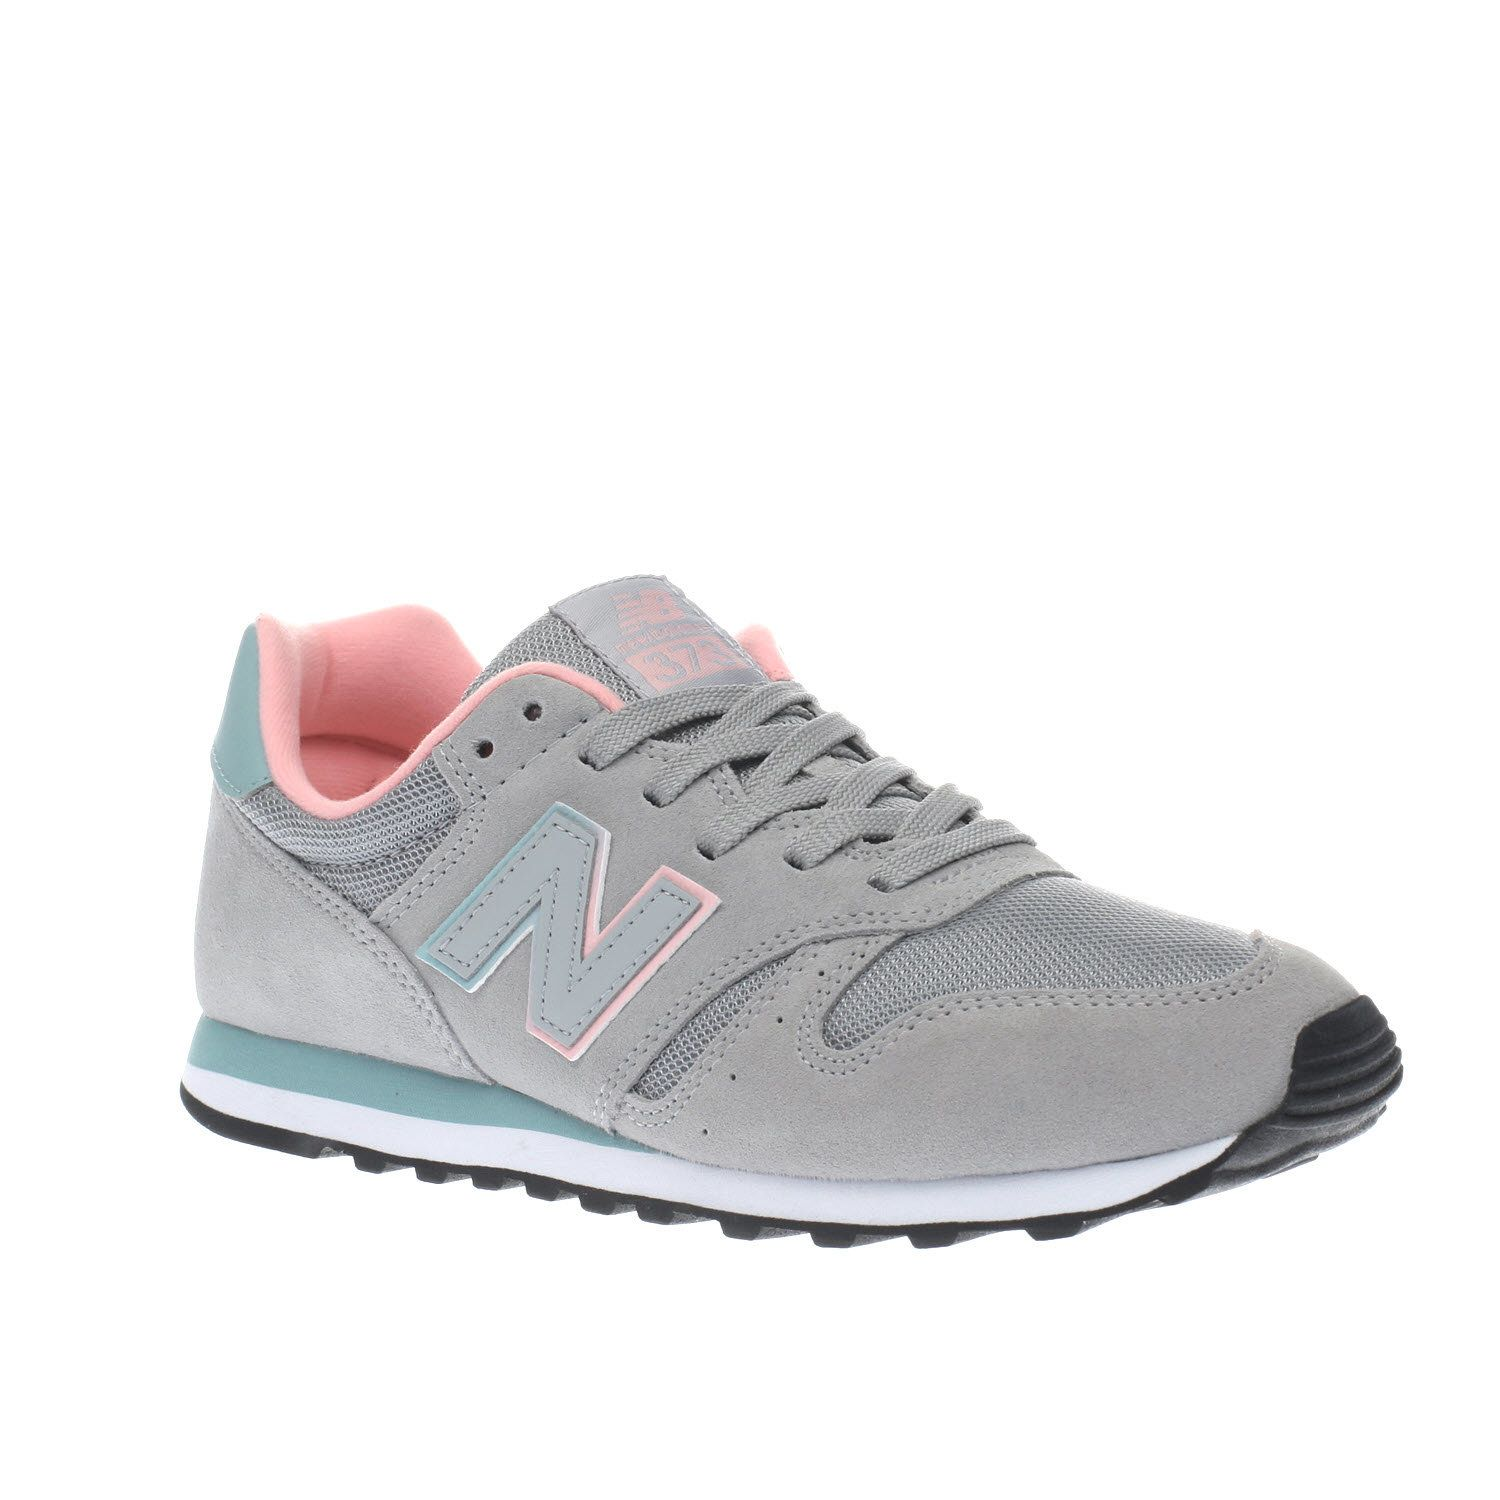 light grey 373 suede, part of the womens new balance trainers range  available at schuh